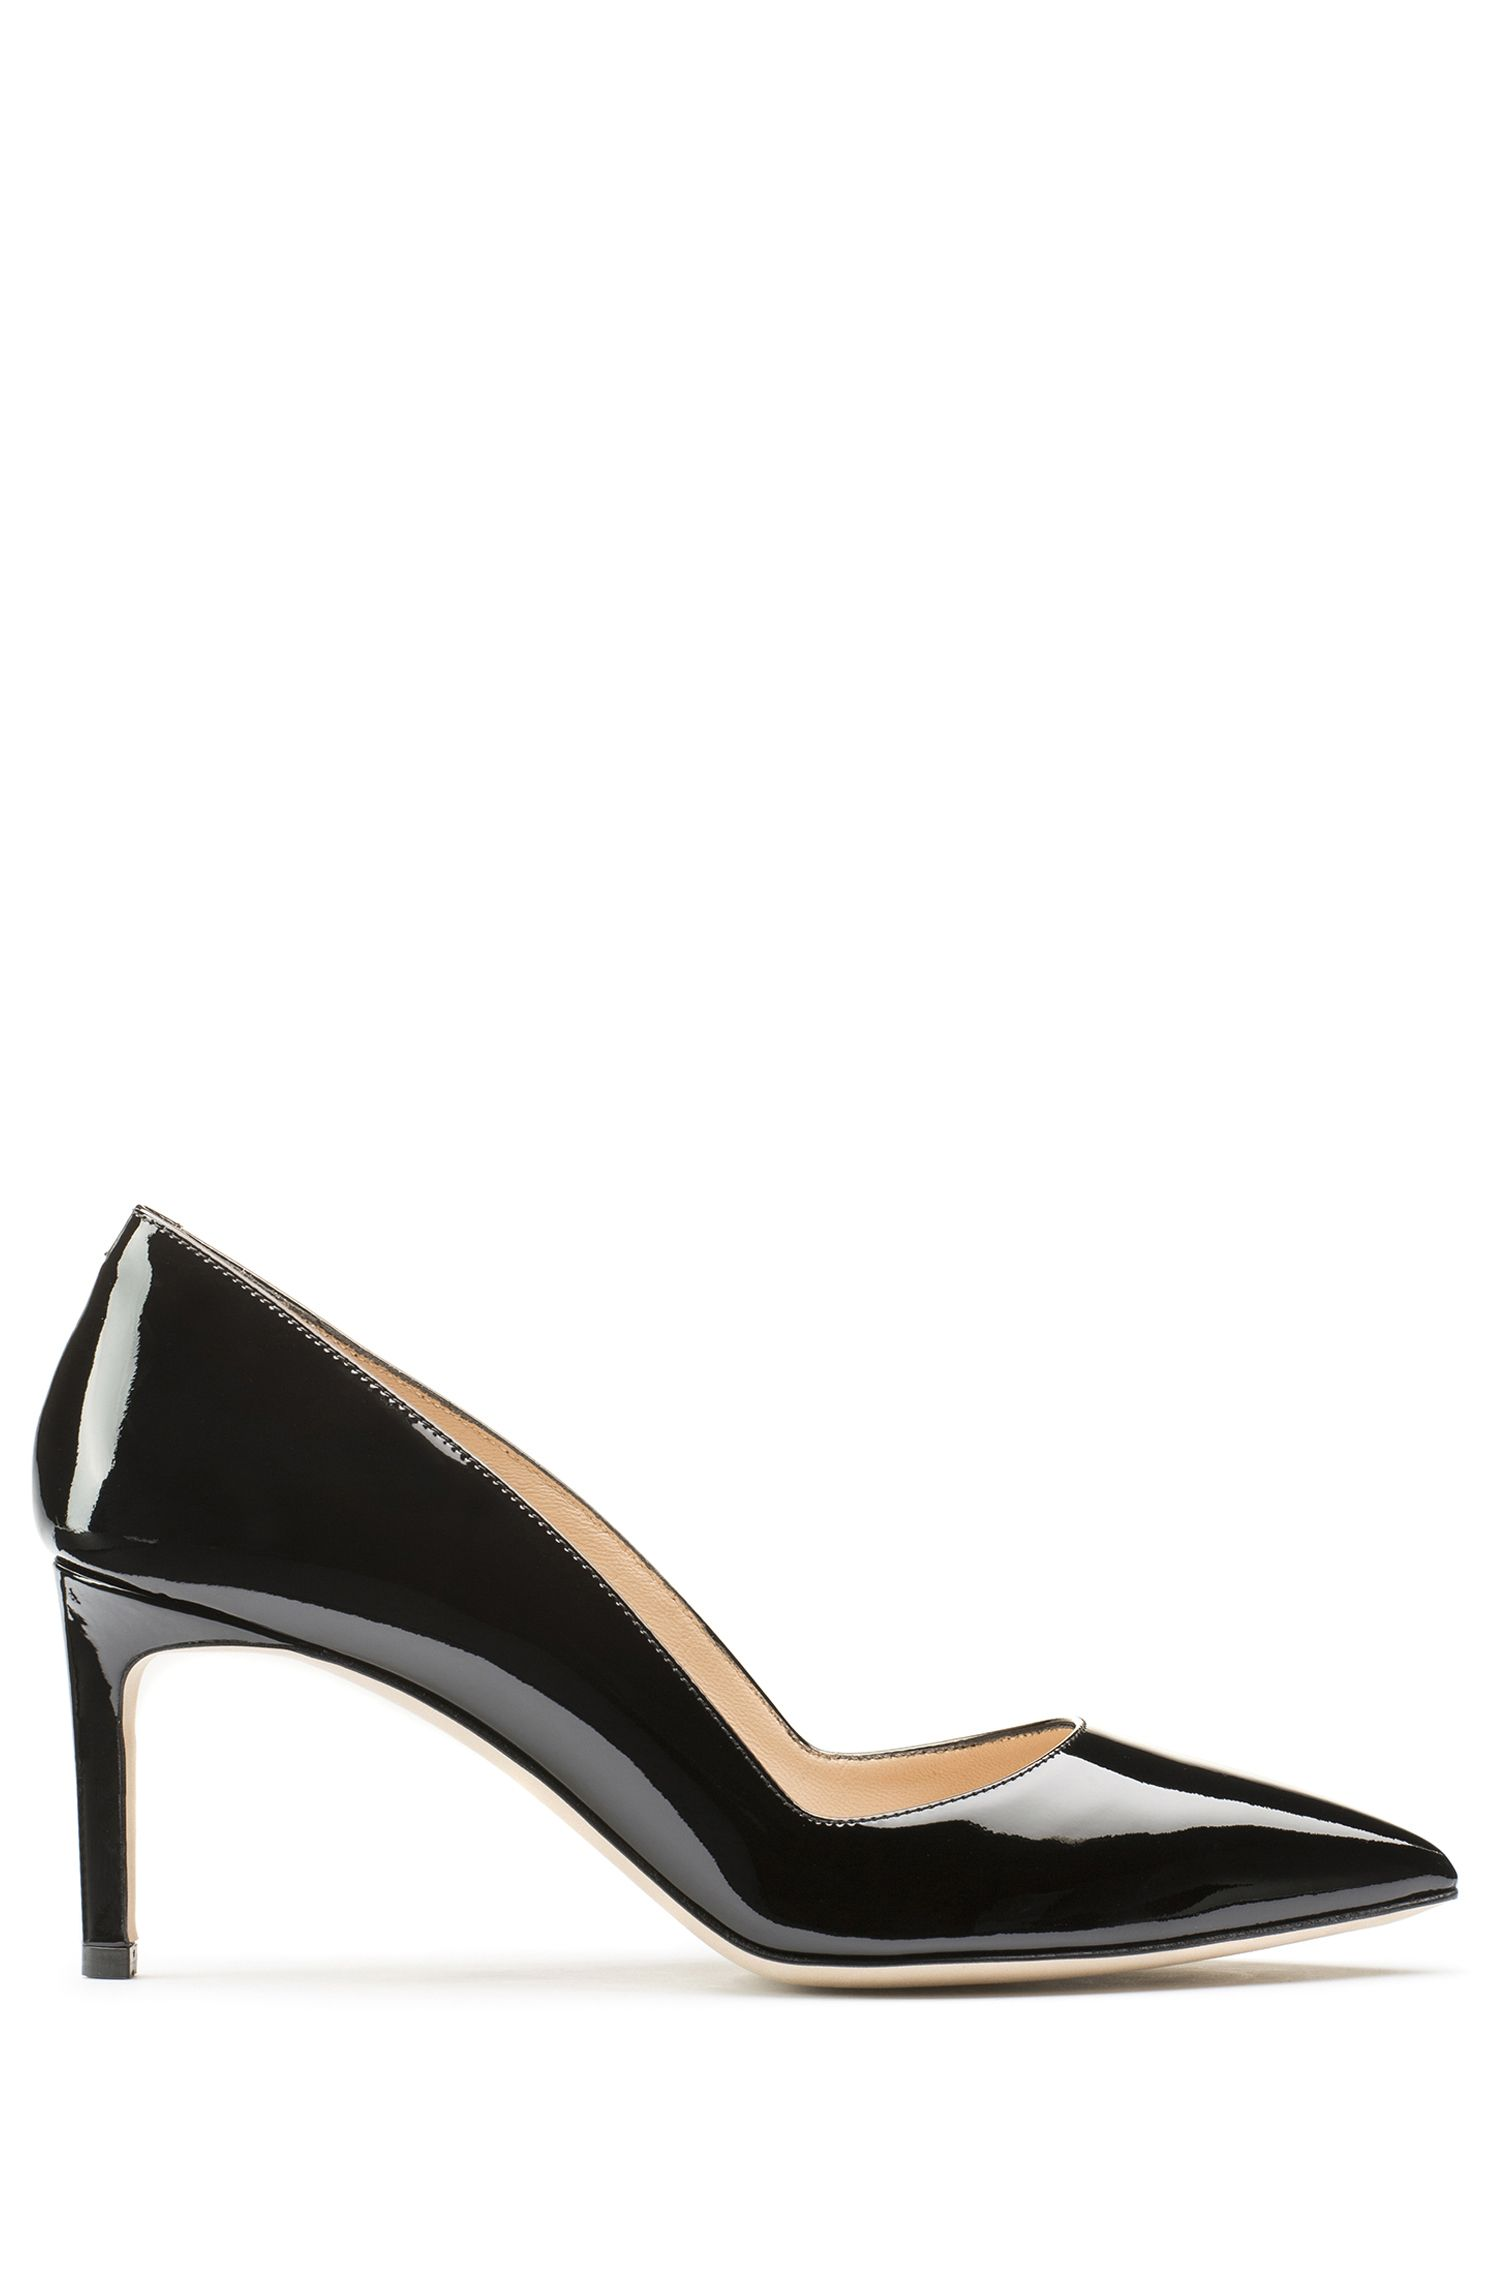 Pointed-toe pumps in patent leather